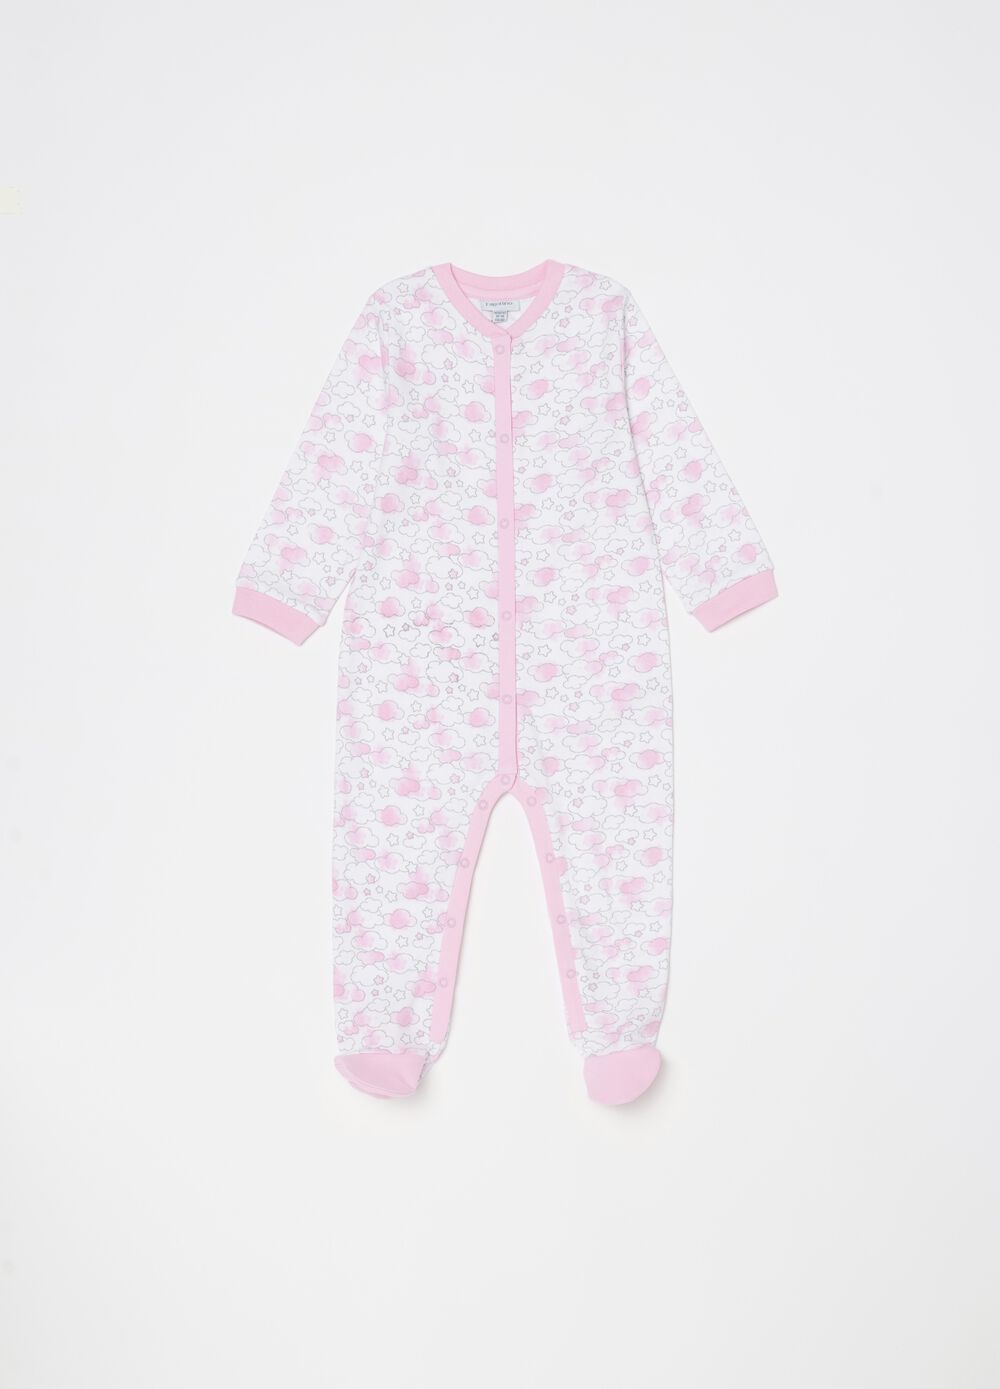 Onesie with feet and pattern